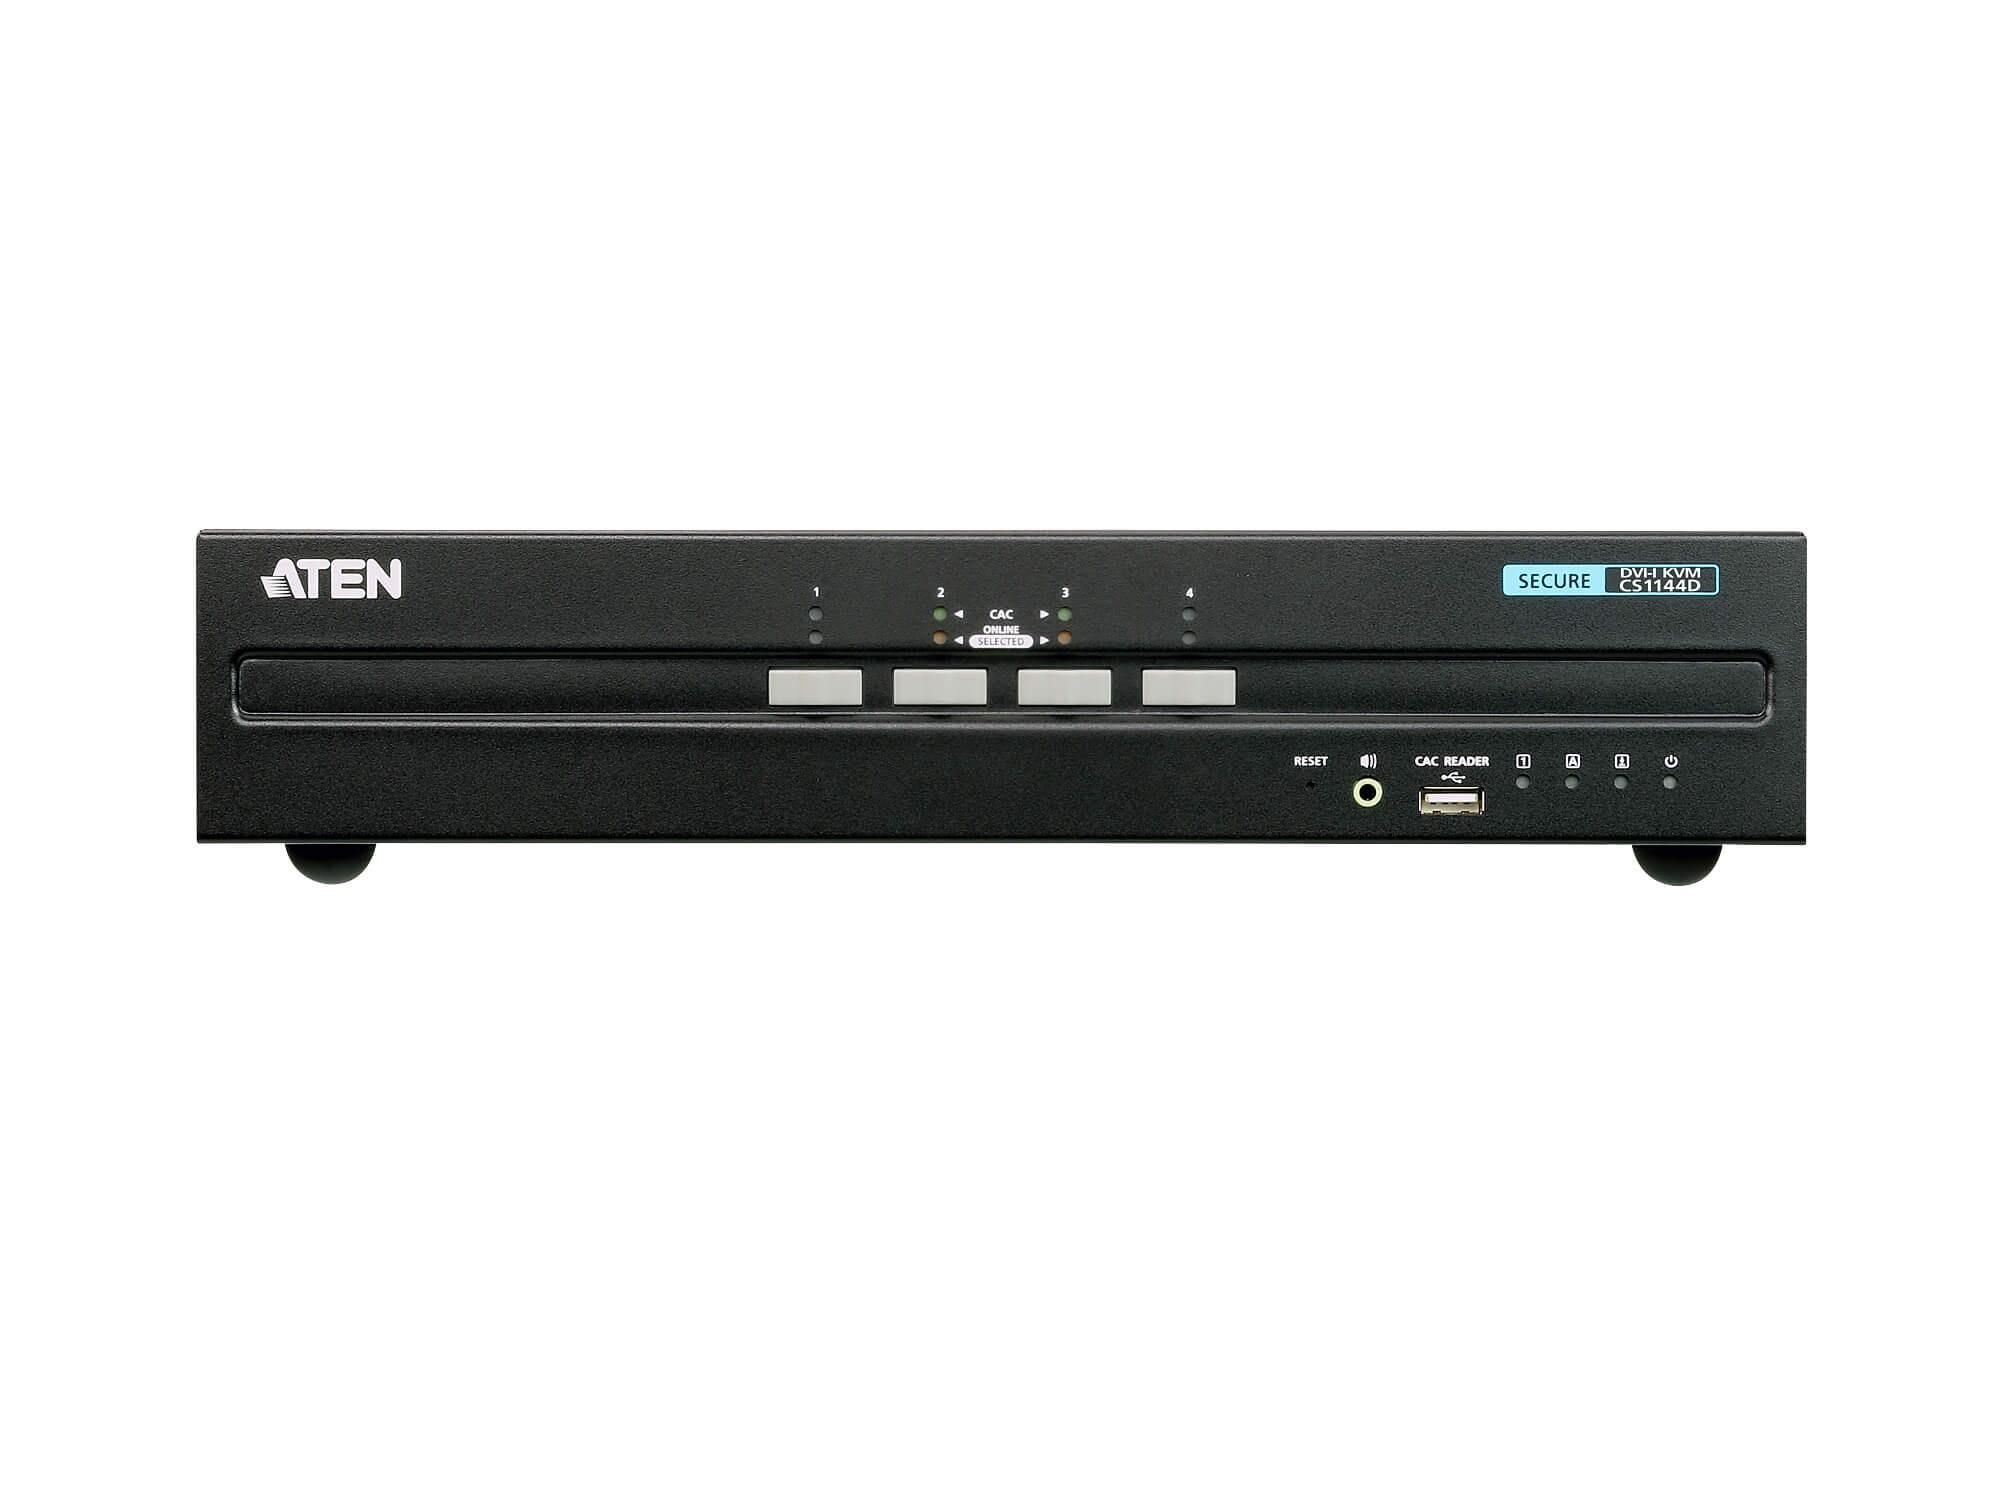 Aten CS1144D 4-Port USB DVI Dual Display Secure KVM Switch (PSS PP v3.0 Compliant)